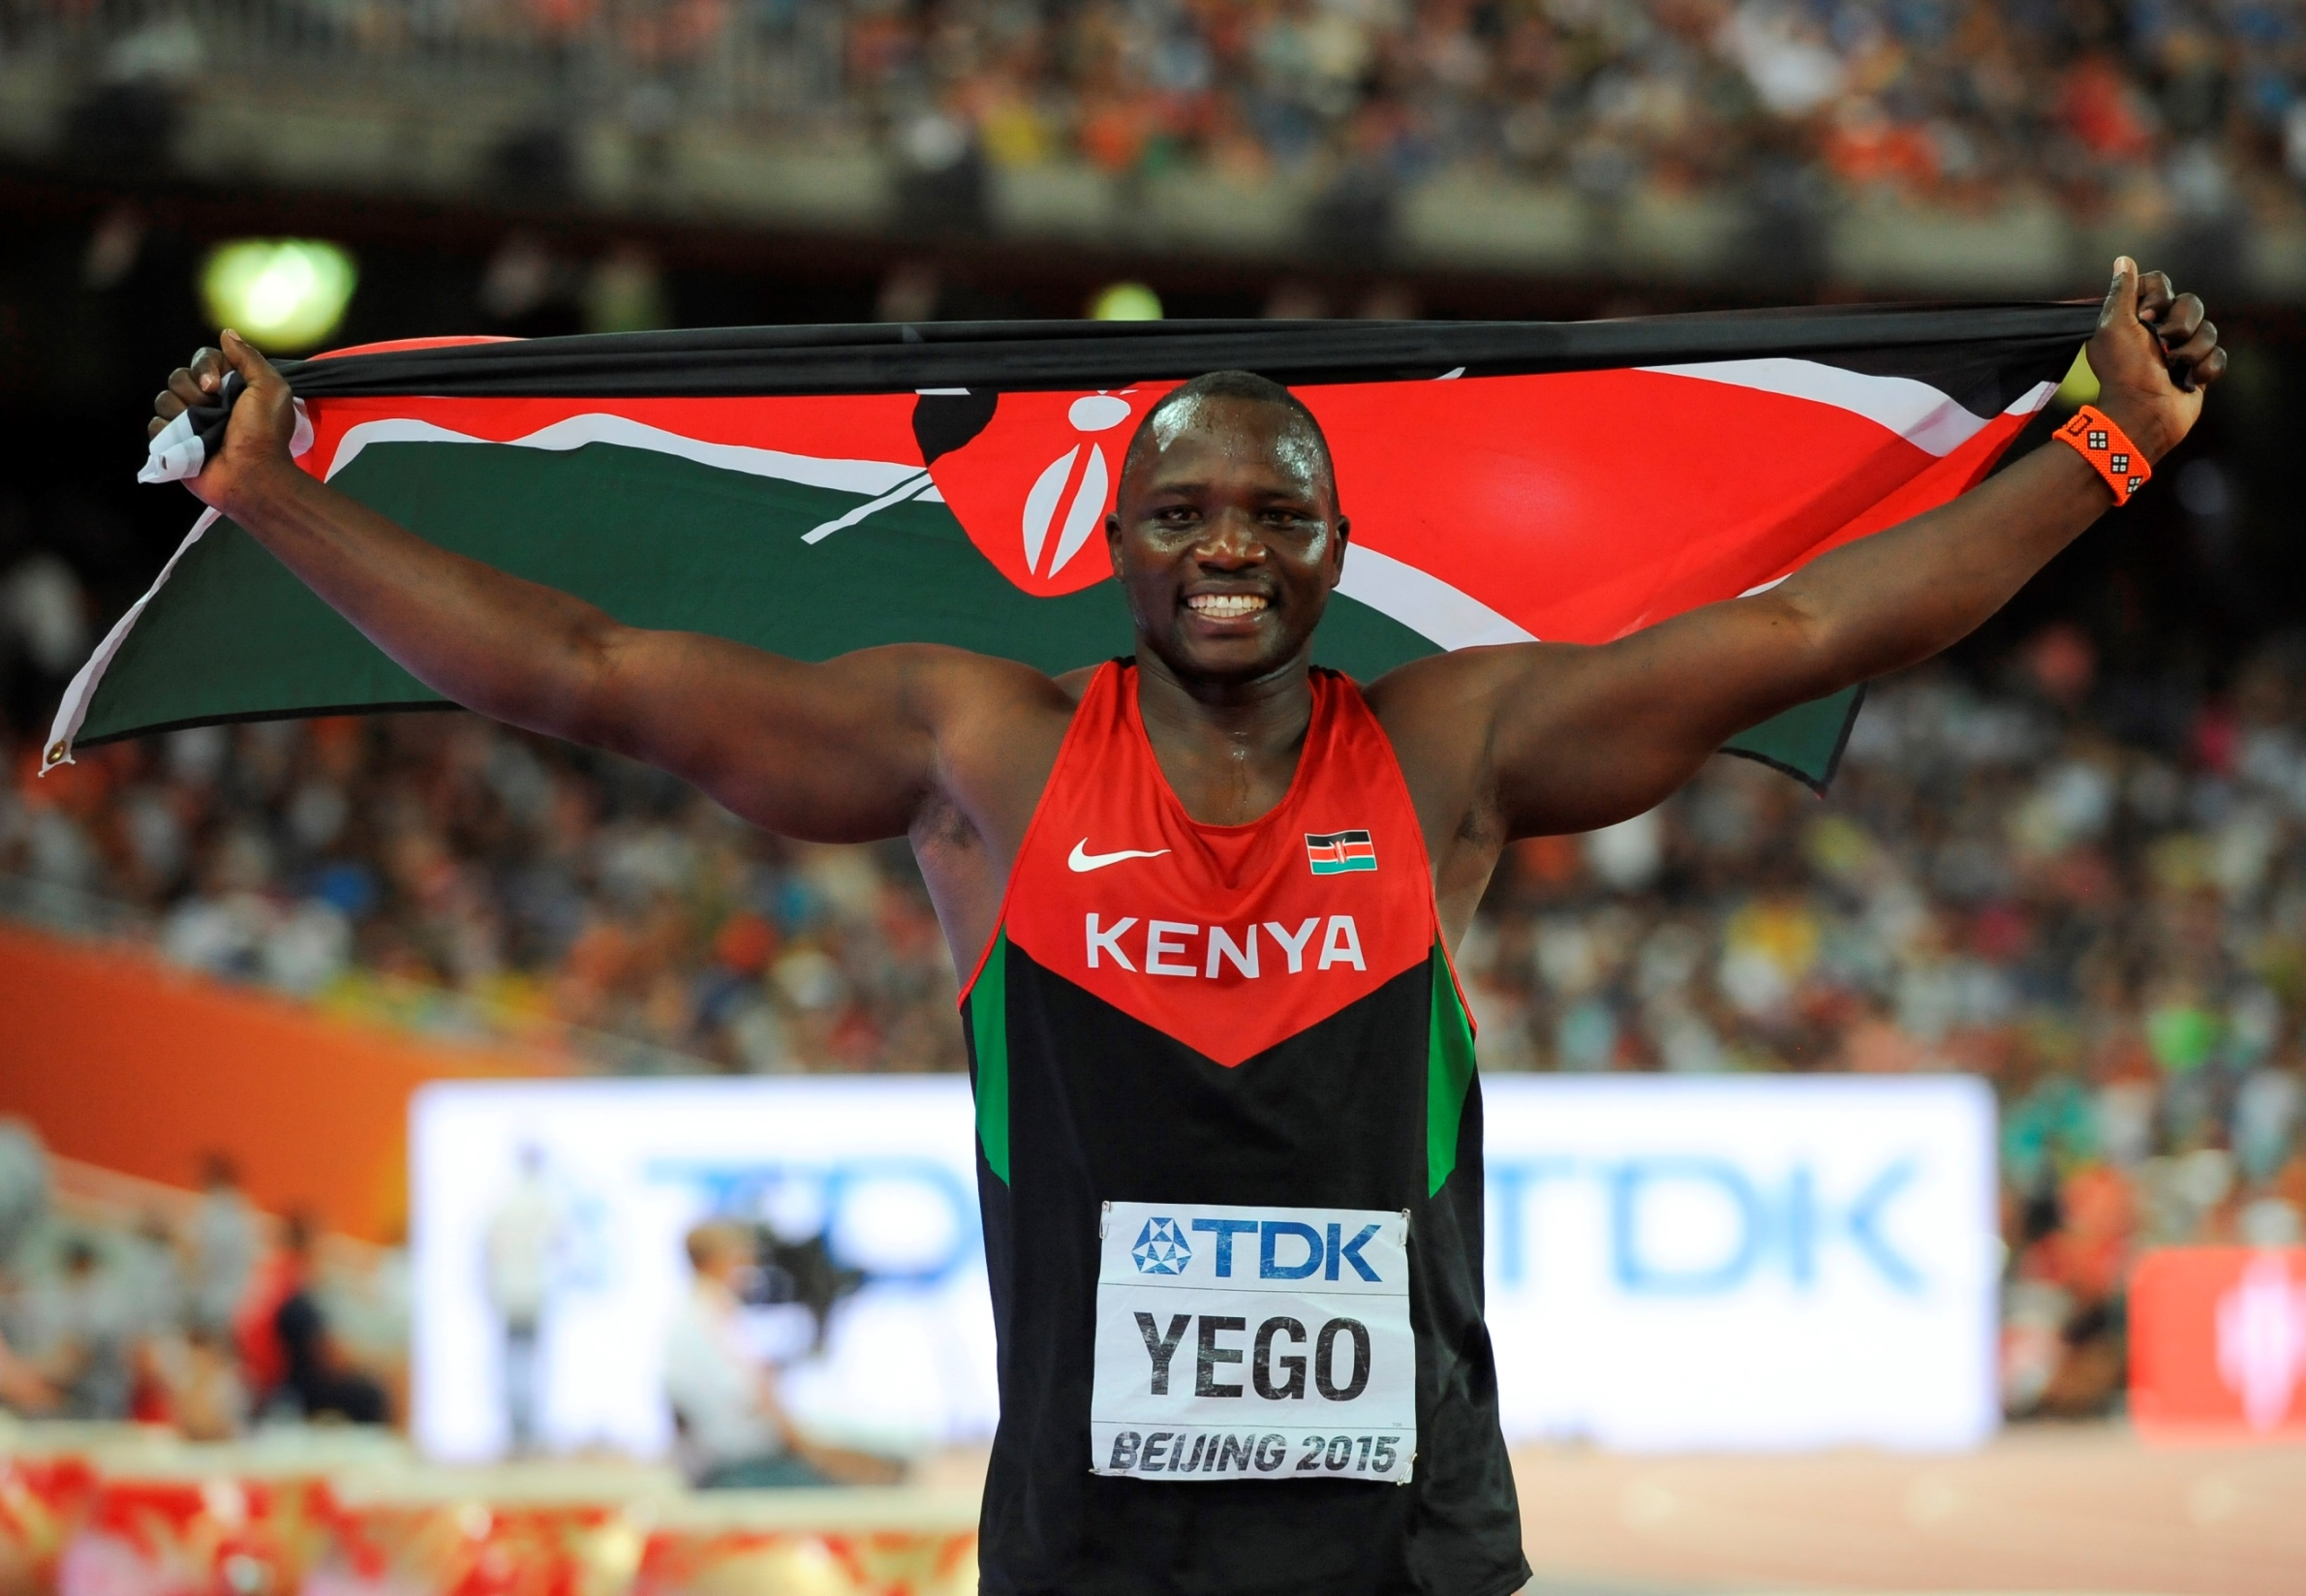 Nigeria should never host African Champs again – Julius Yego